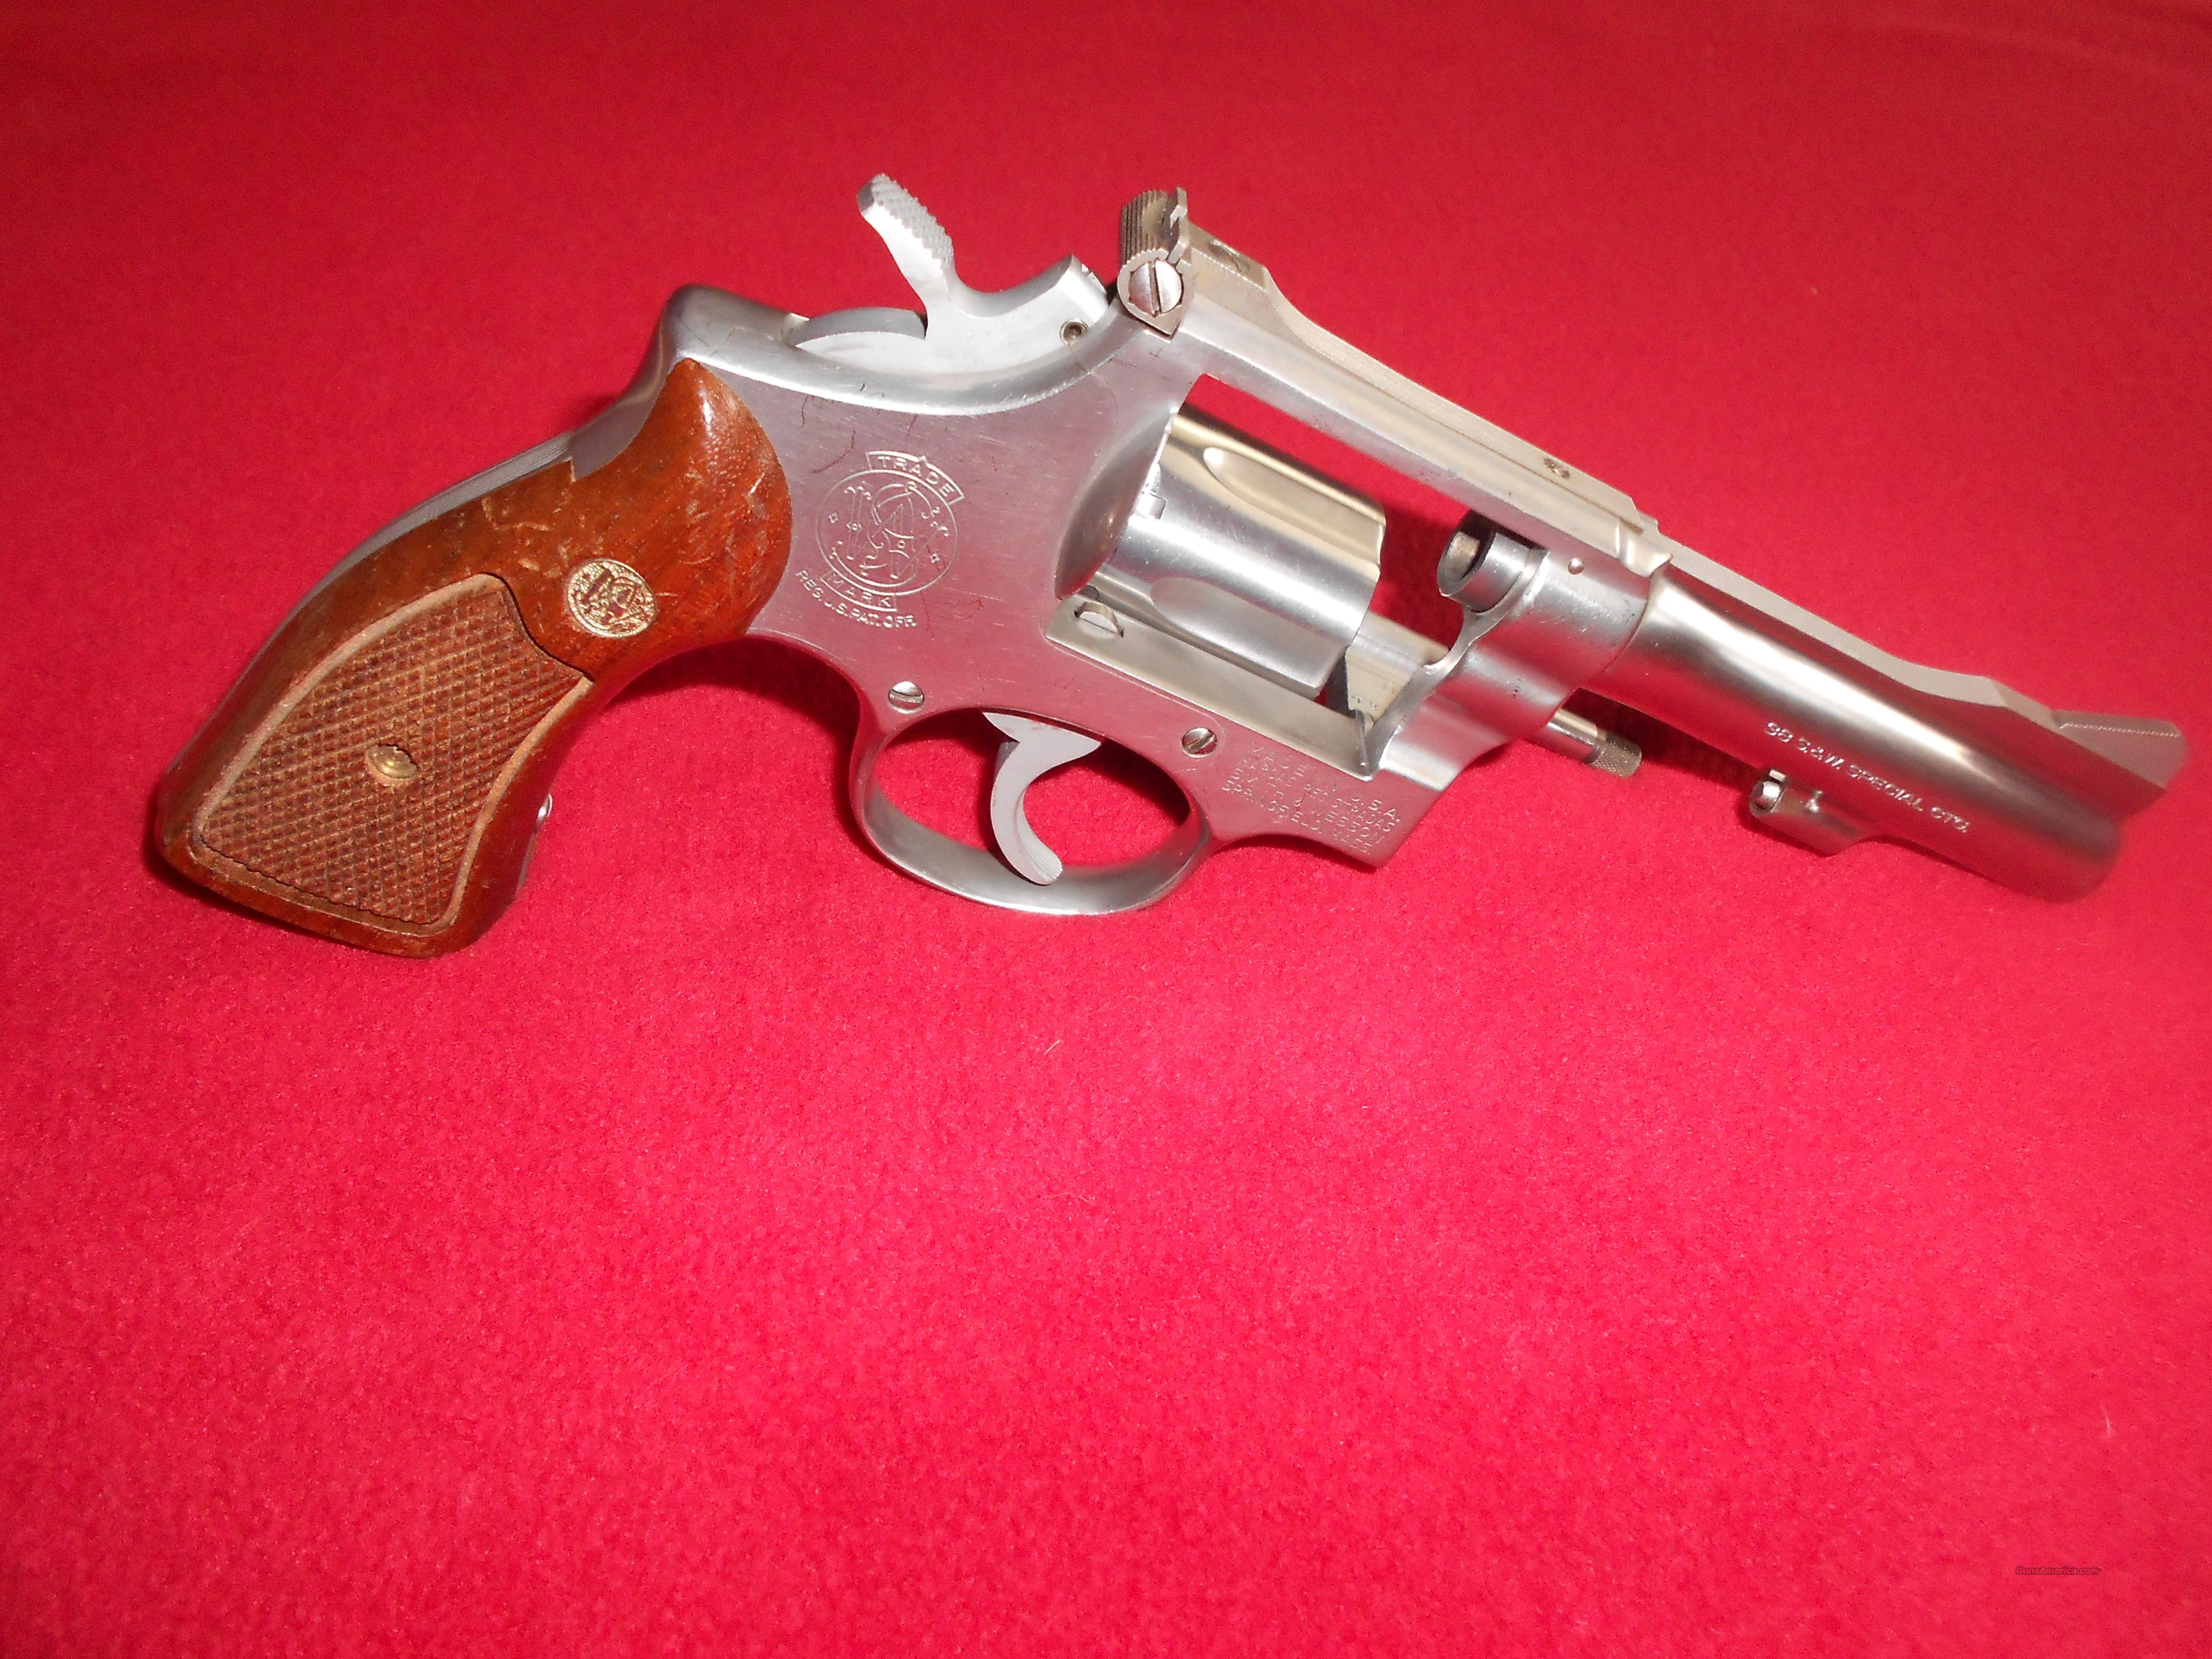 Smith&Wesson  Mod-67  .38spcl  Guns > Pistols > Smith & Wesson Revolvers > Full Frame Revolver